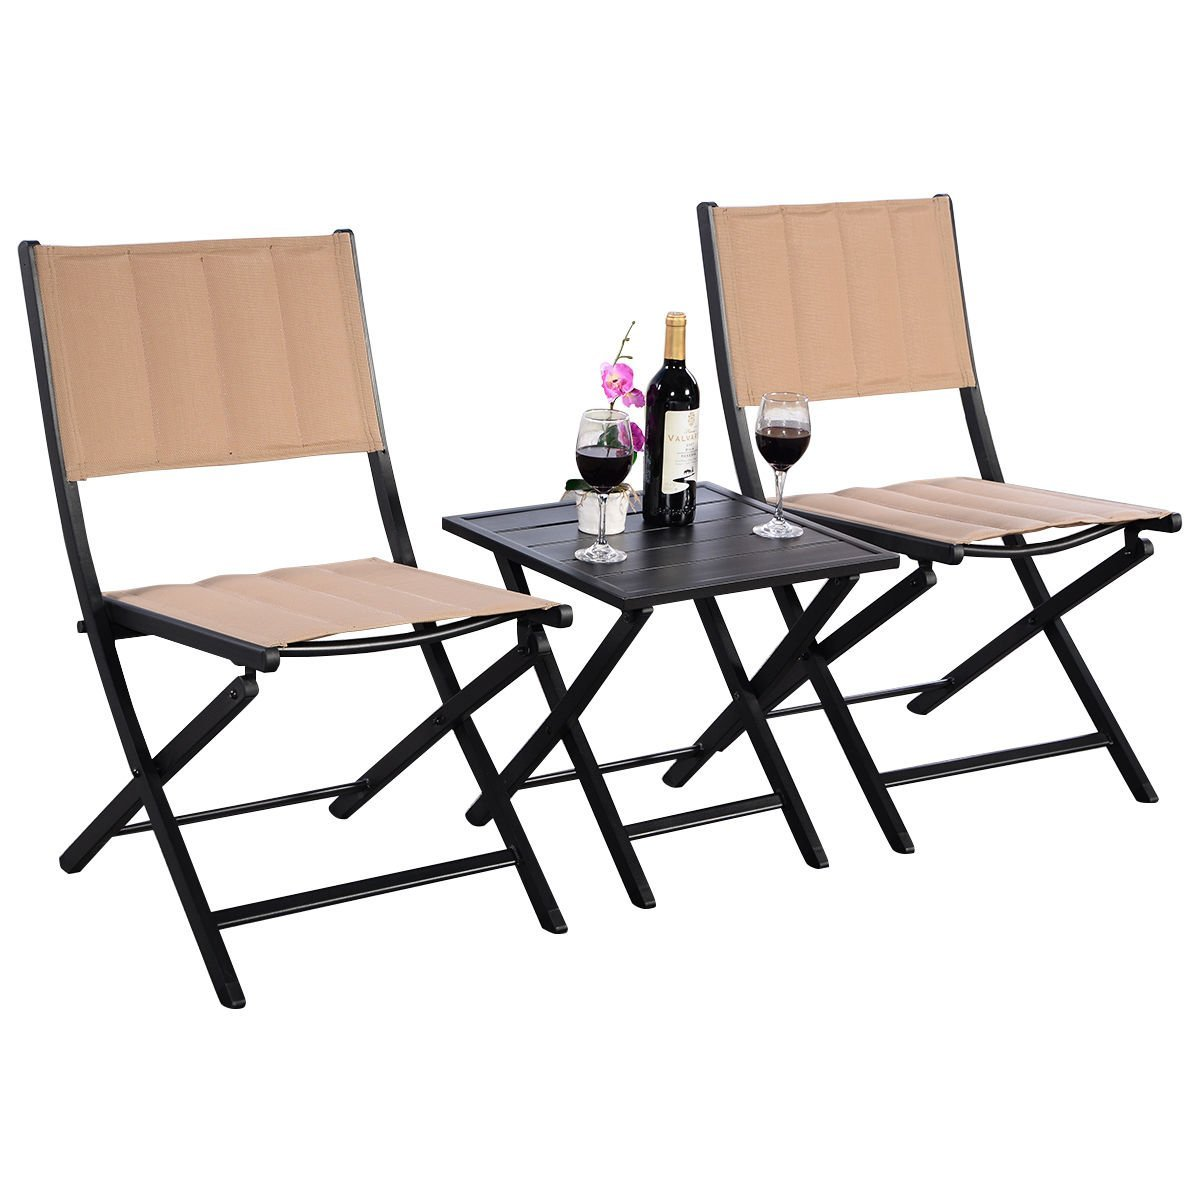 MRT SUPPLY 3PCS Furniture Outdoor Patio Folding Square Table Chairs Set Bistro Garden with Ebook by MRT SUPPLY